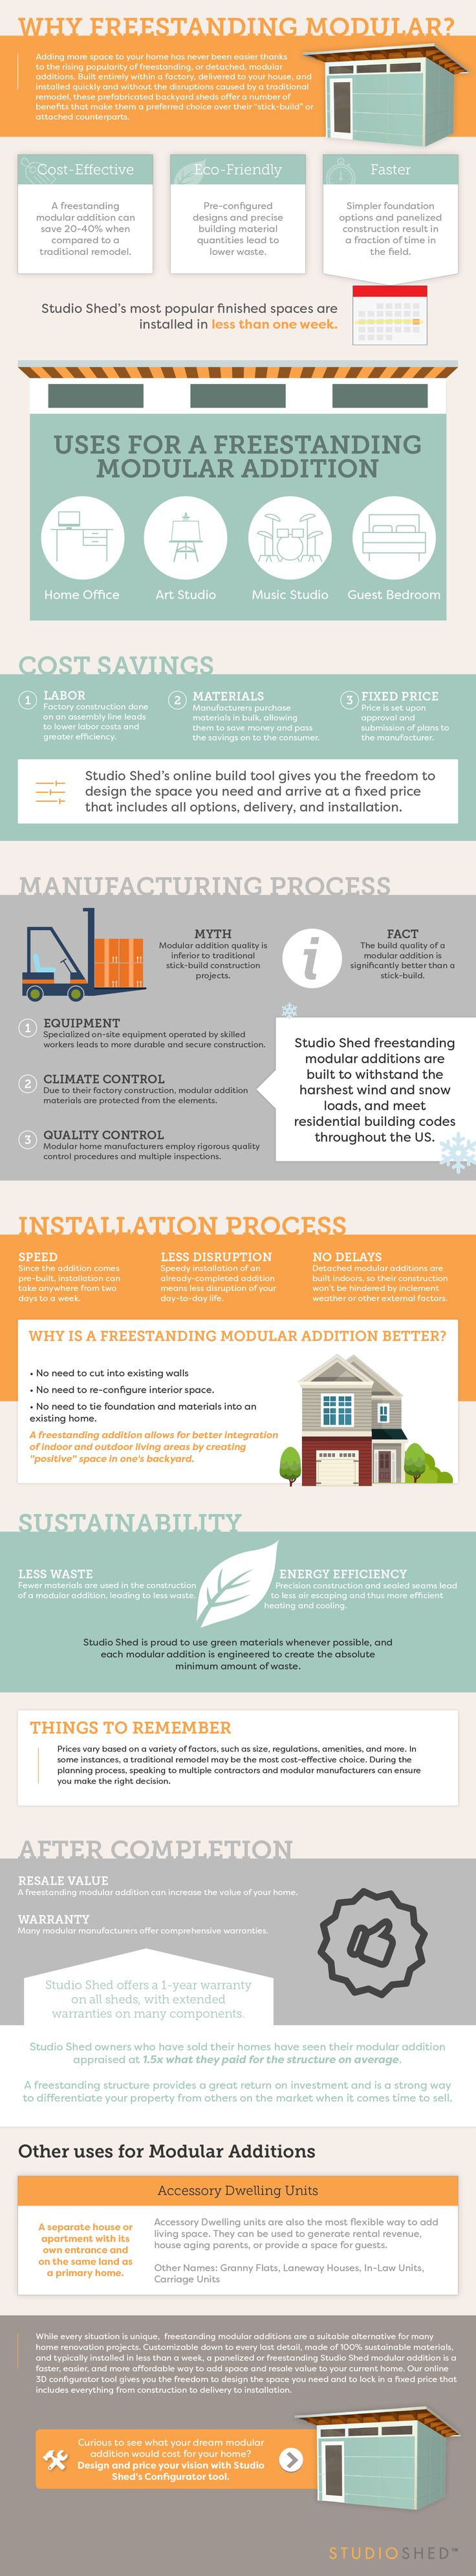 This Infographic From Studio Shed Covers The Benefits Of A Freestanding  Modular Addition Over A Traditional Remodel.